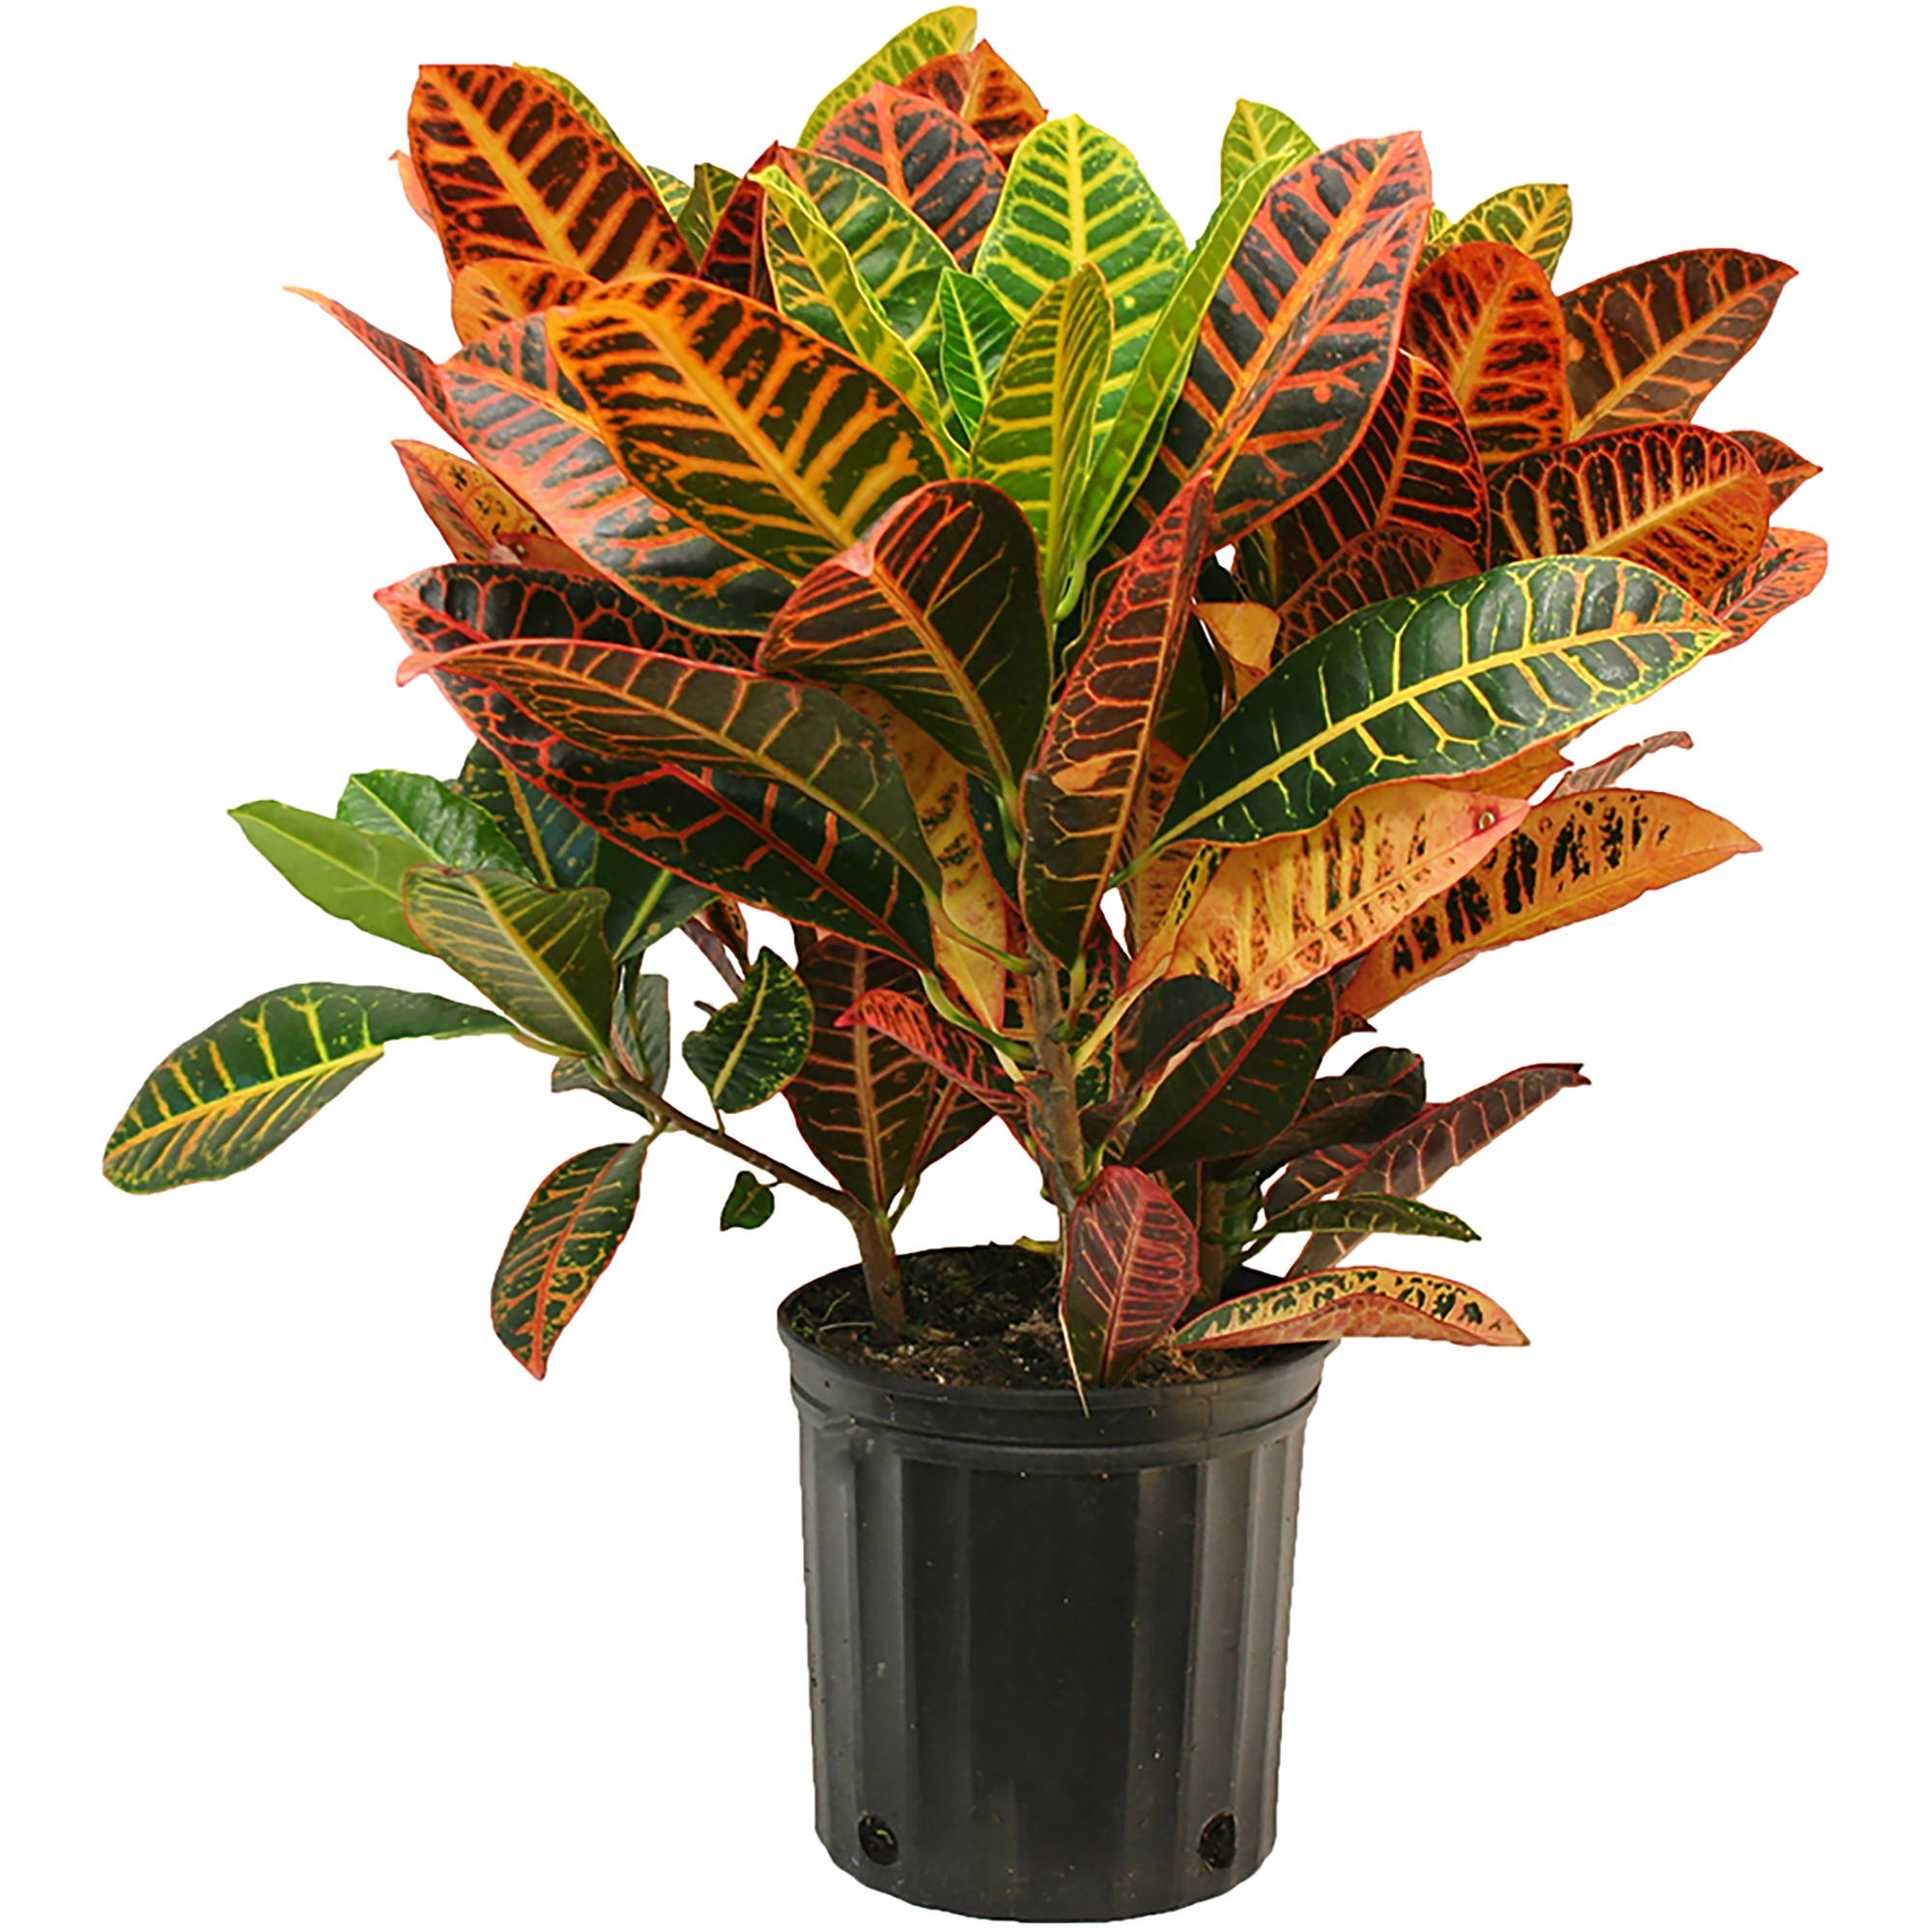 Croton (Codiaeum) Petra Easy Care Live House Plant from Delray Plants, 10-inch Grower Pot